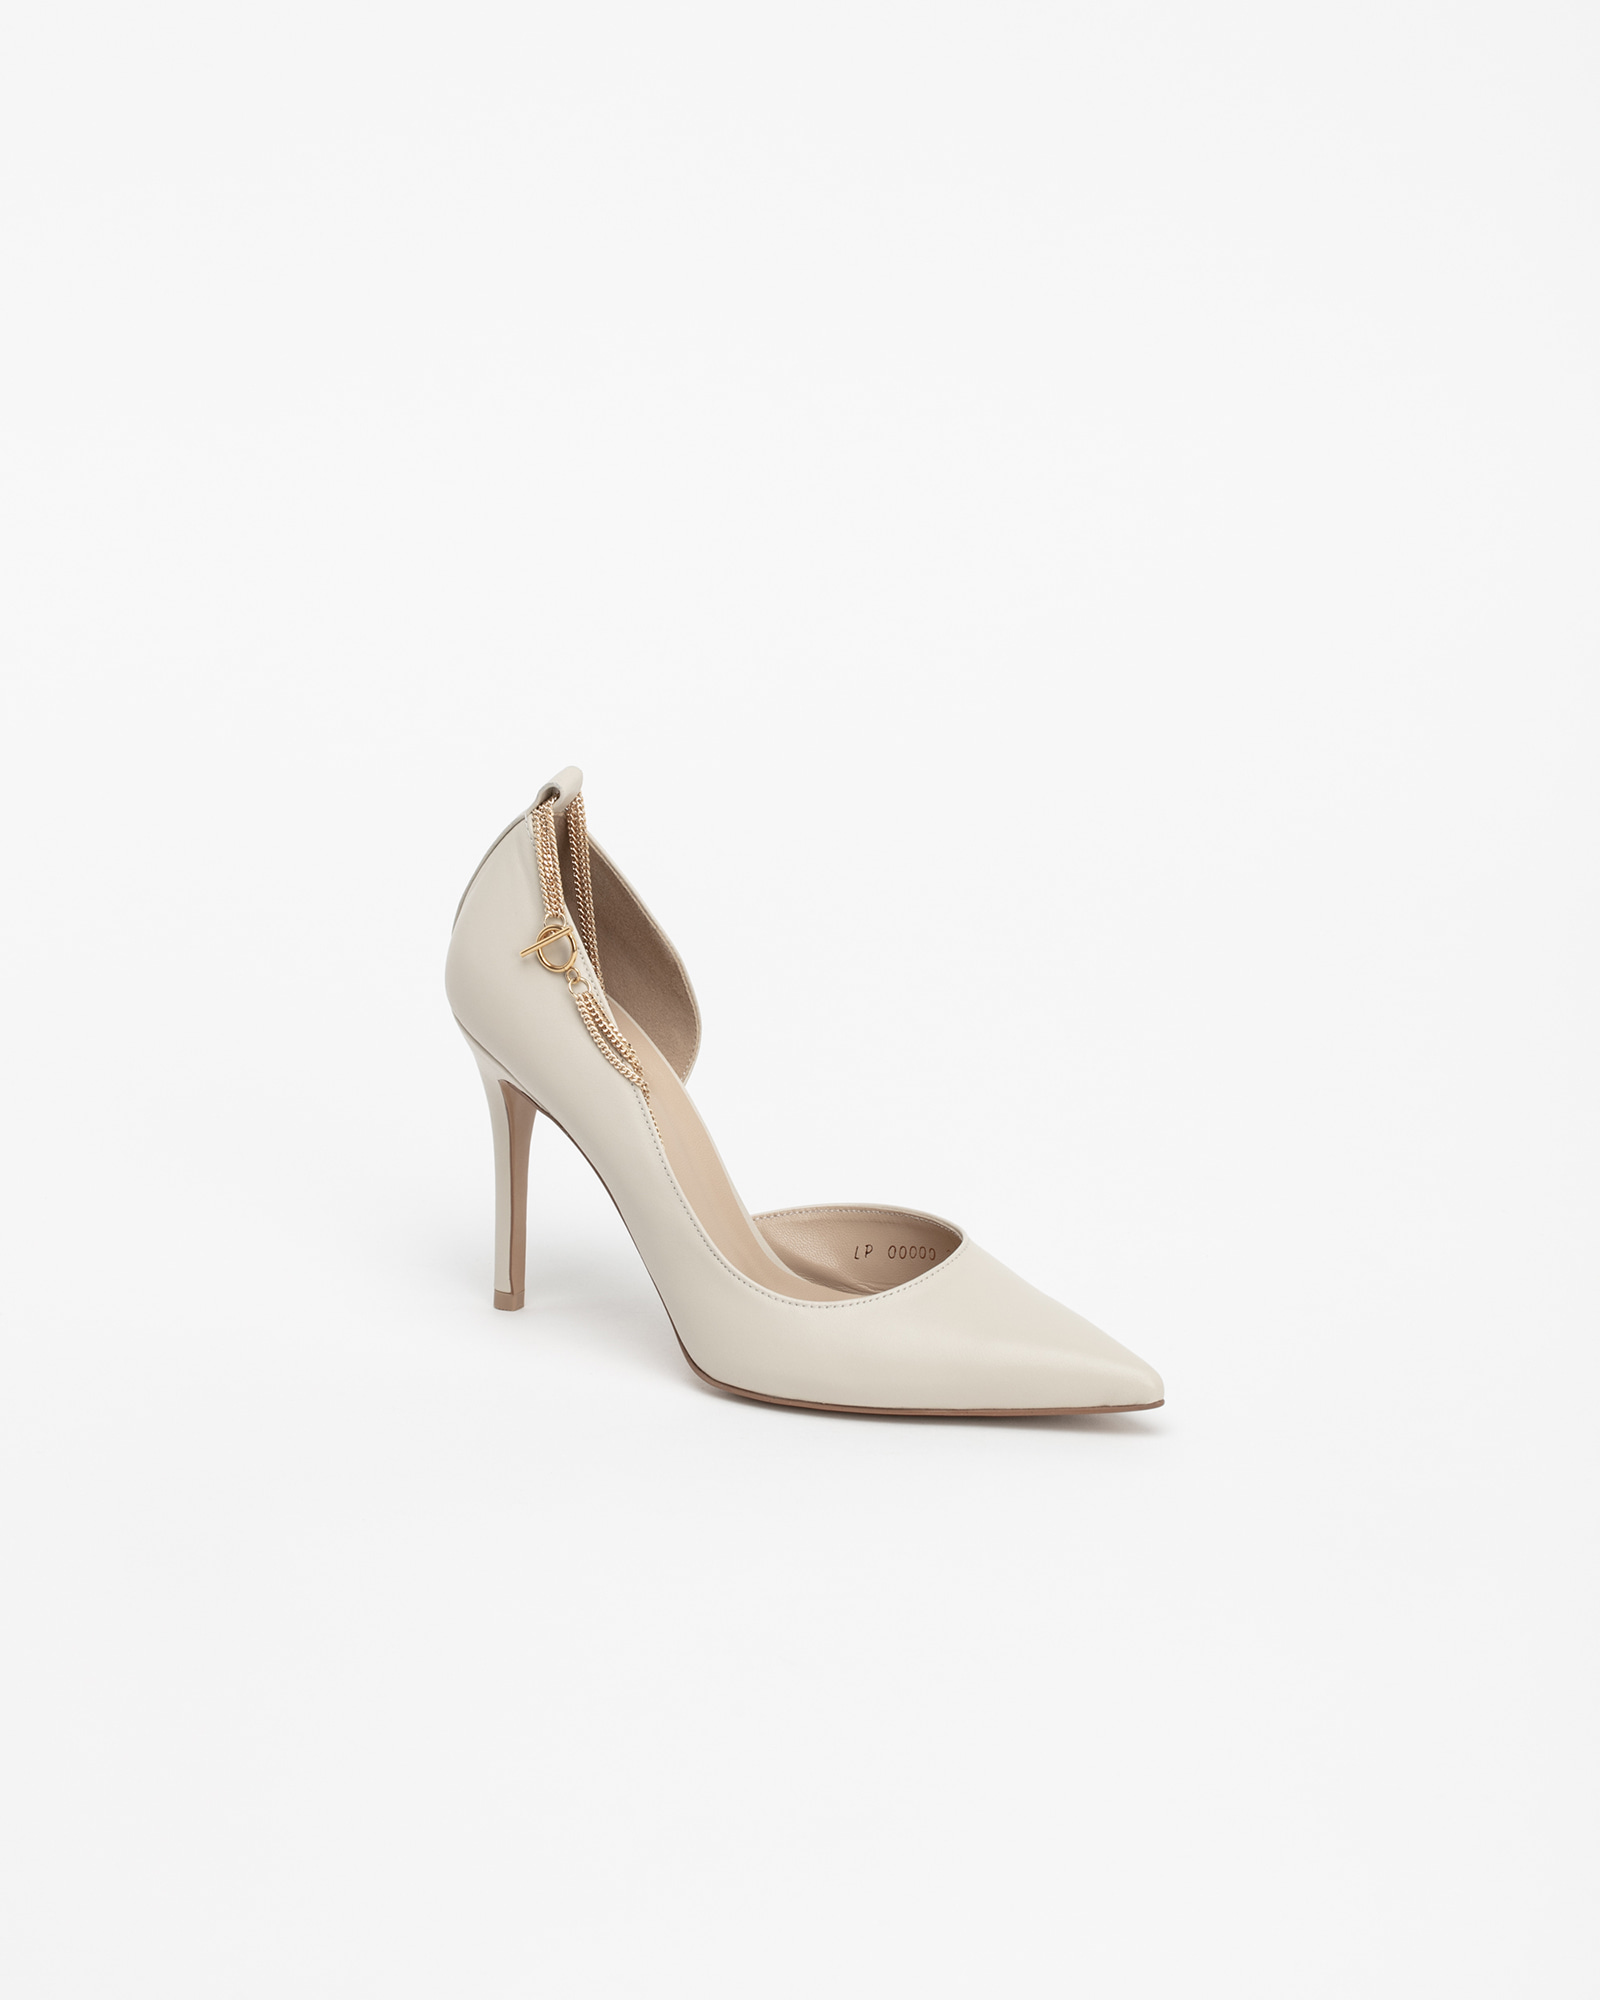 Cinque Chained Stiletto Pumps in Ivory